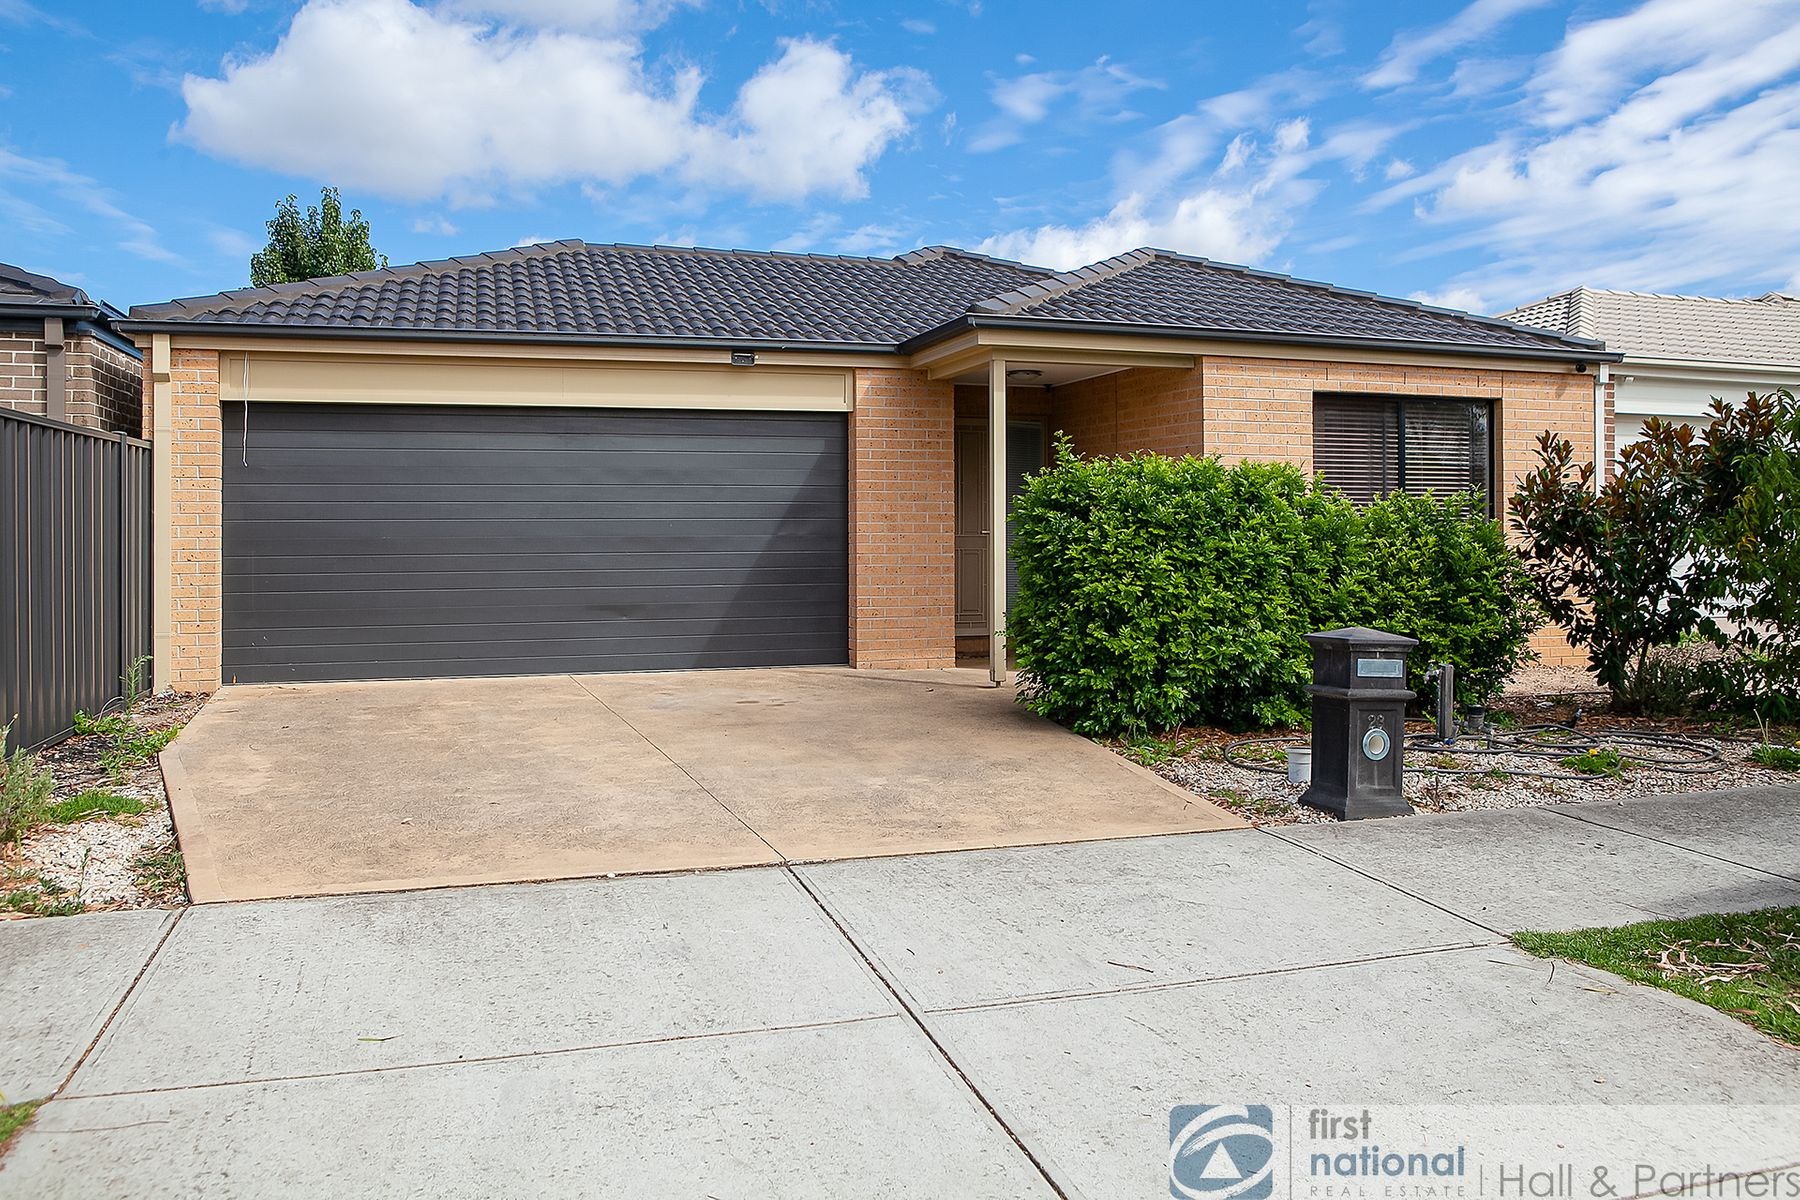 23 Persimmon Way, Doreen, VIC 3754